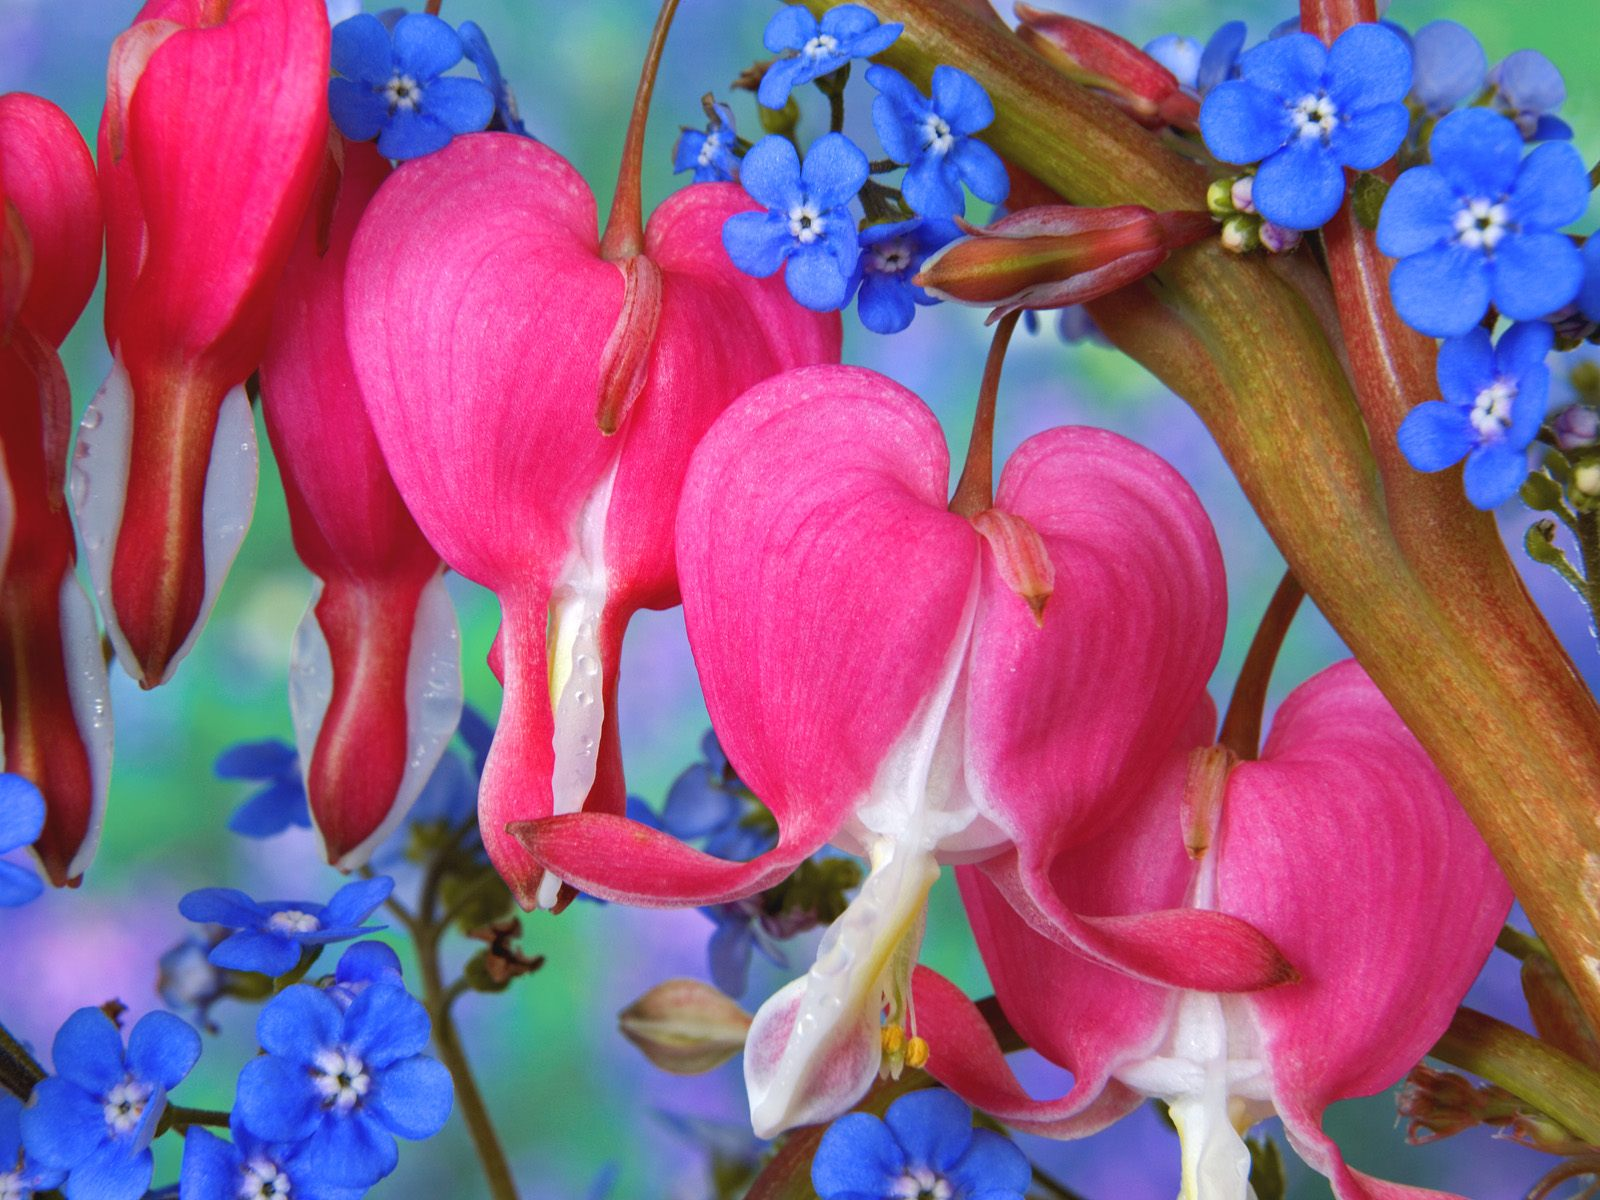 Bleeding Heart Flowers 559.12 Kb